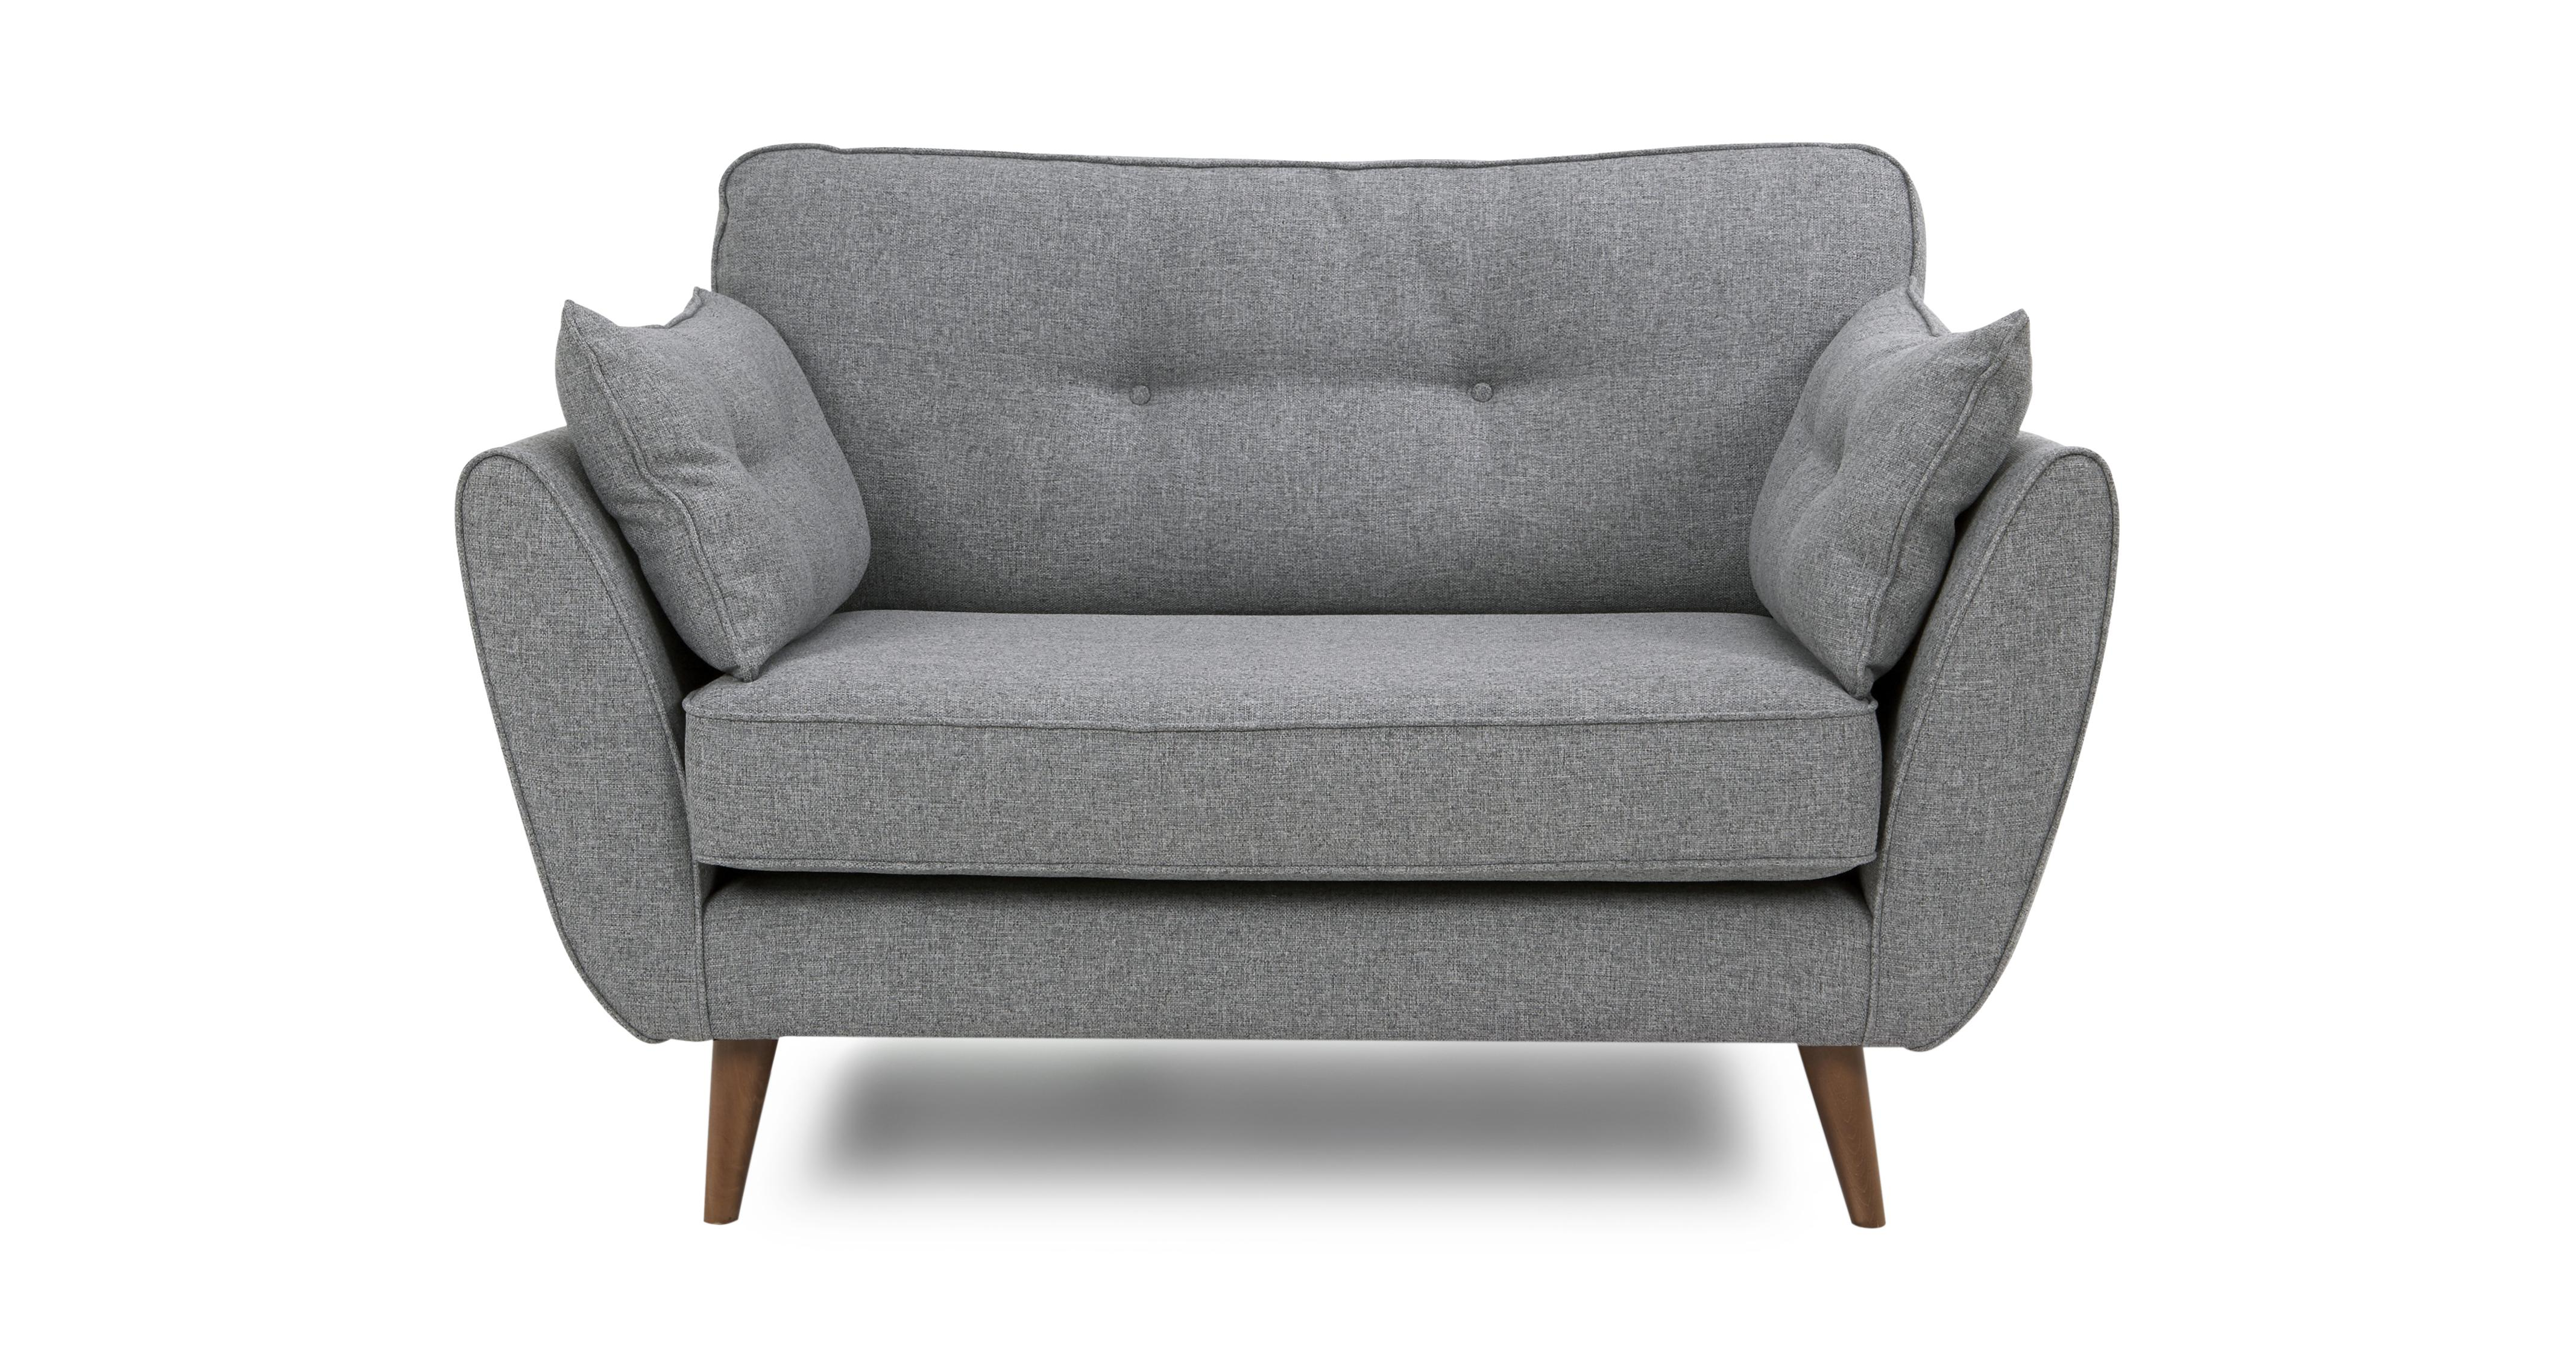 chairs and leather grey fabric chair real modern love sofas dual loveseats loveseat italian color tone seat in ultra